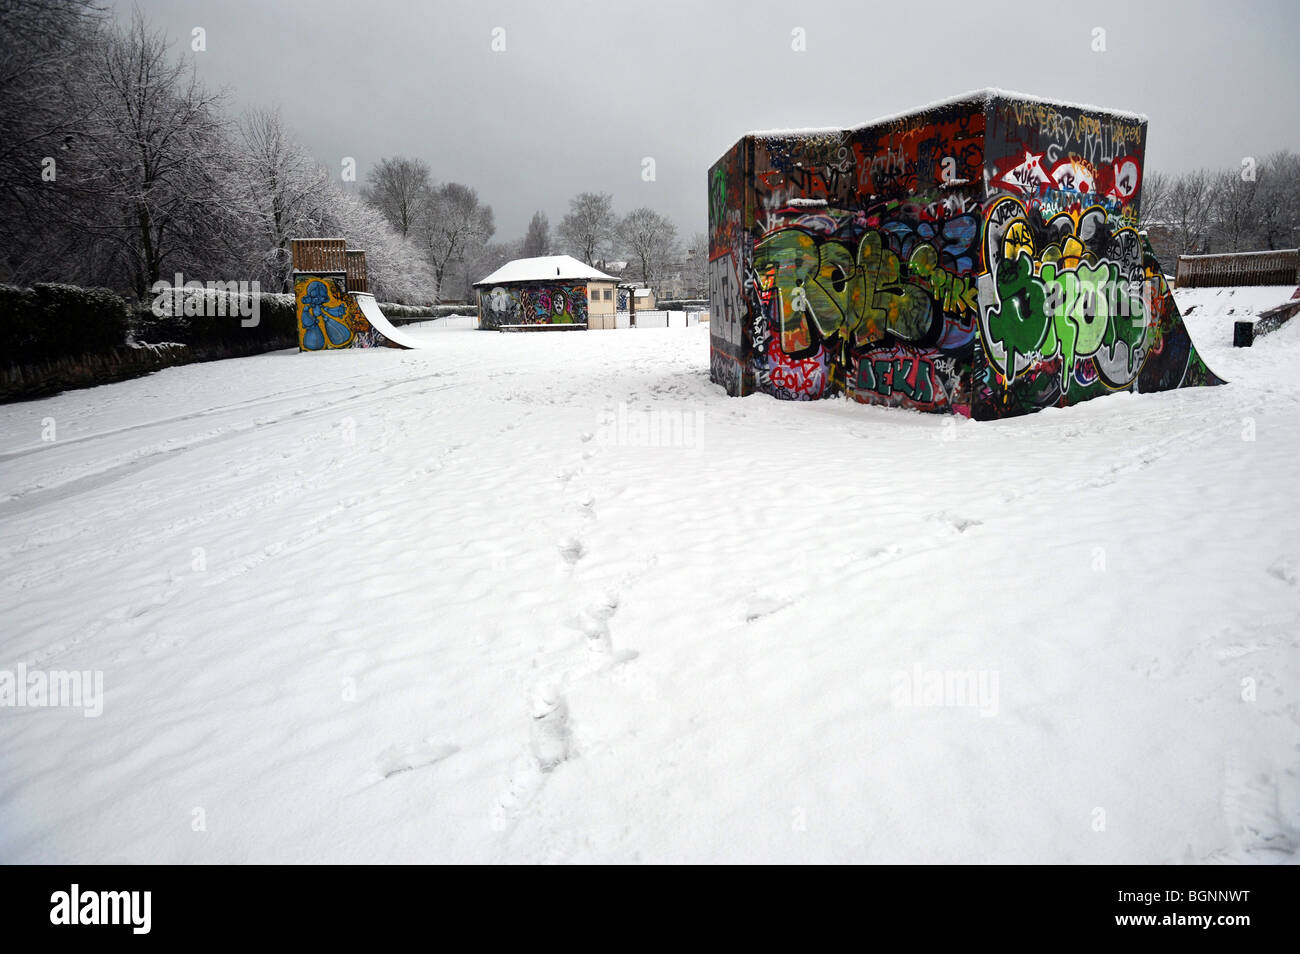 Snow covers the skate park at the Level in Brighton - Stock Image